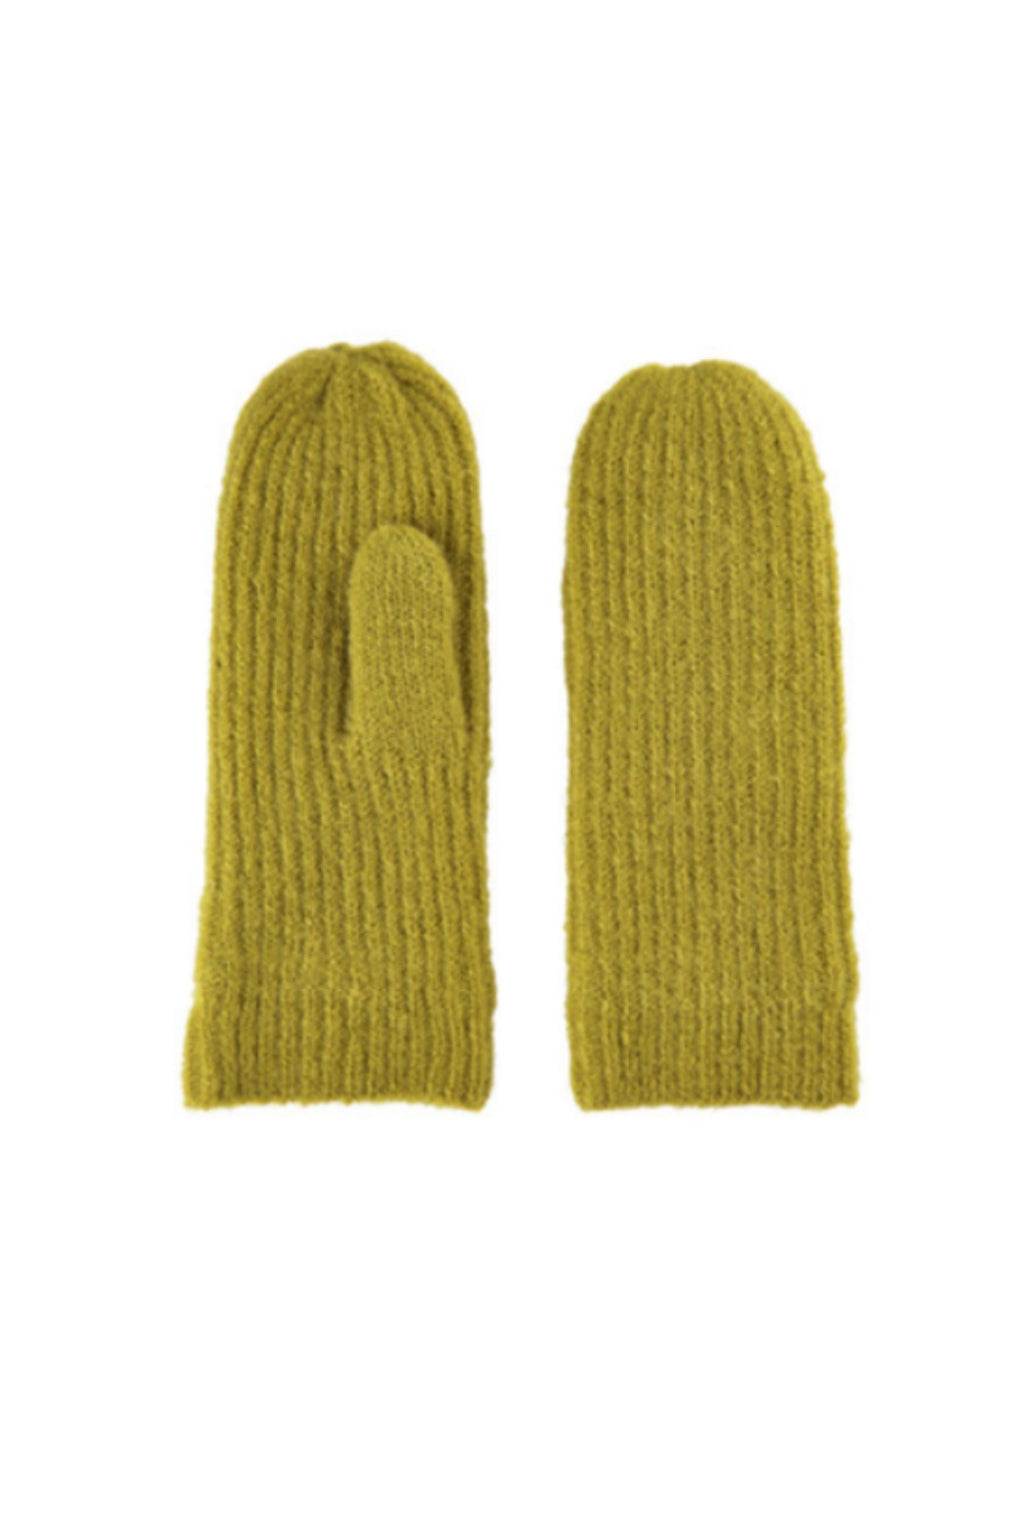 Numph Marcelina Mittens - Golden Olive